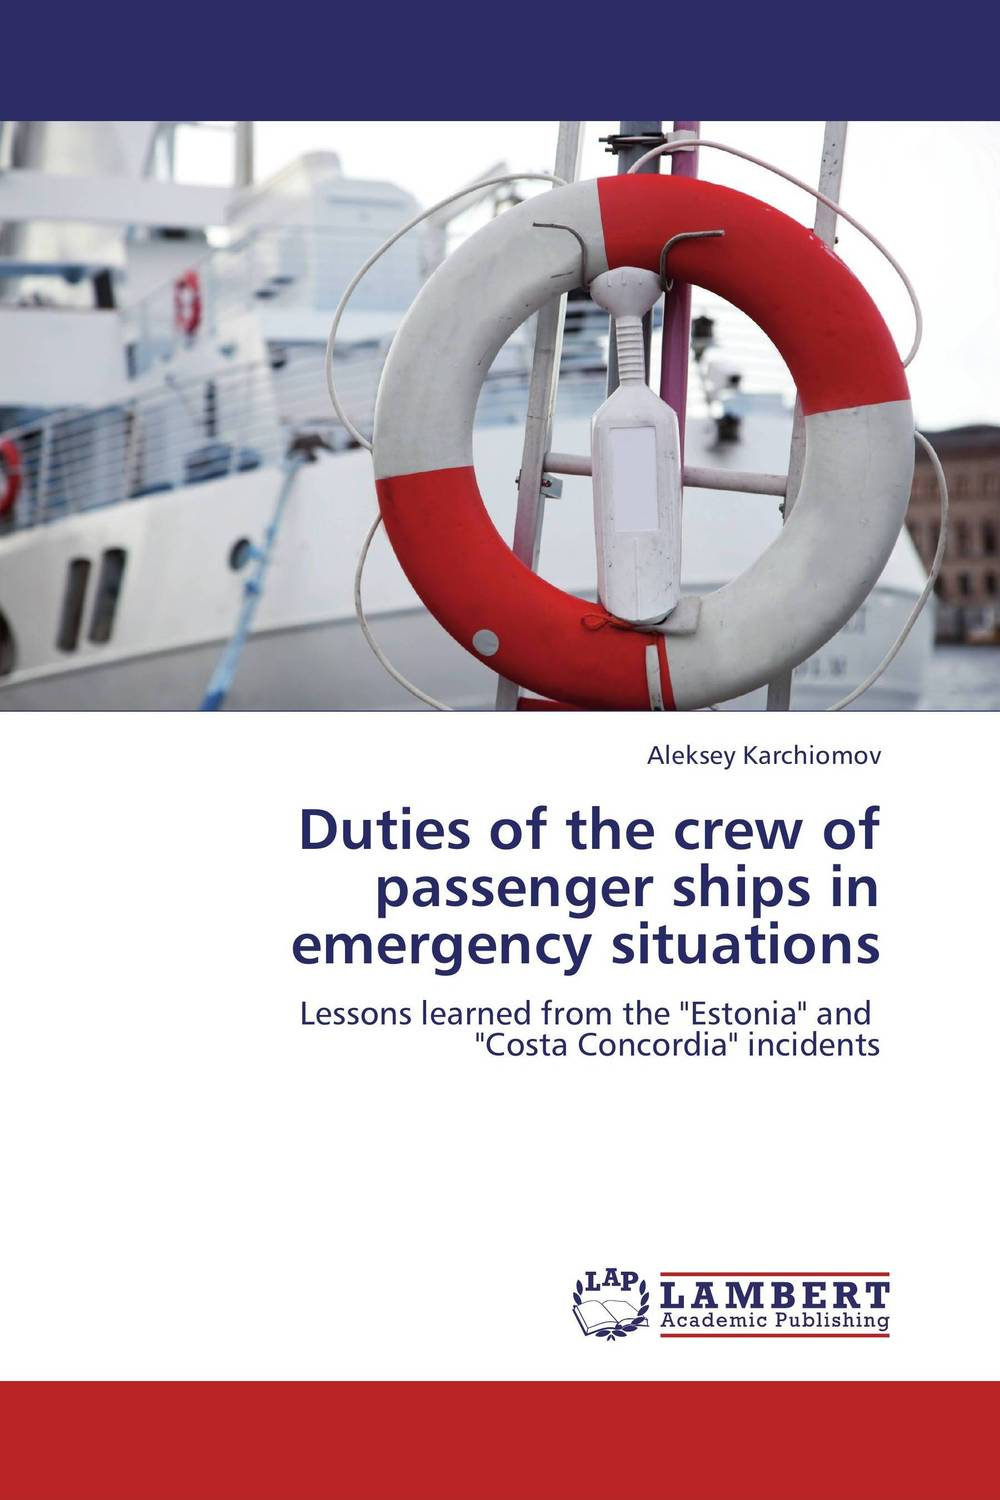 Duties of the crew of passenger ships in emergency situations maritime safety